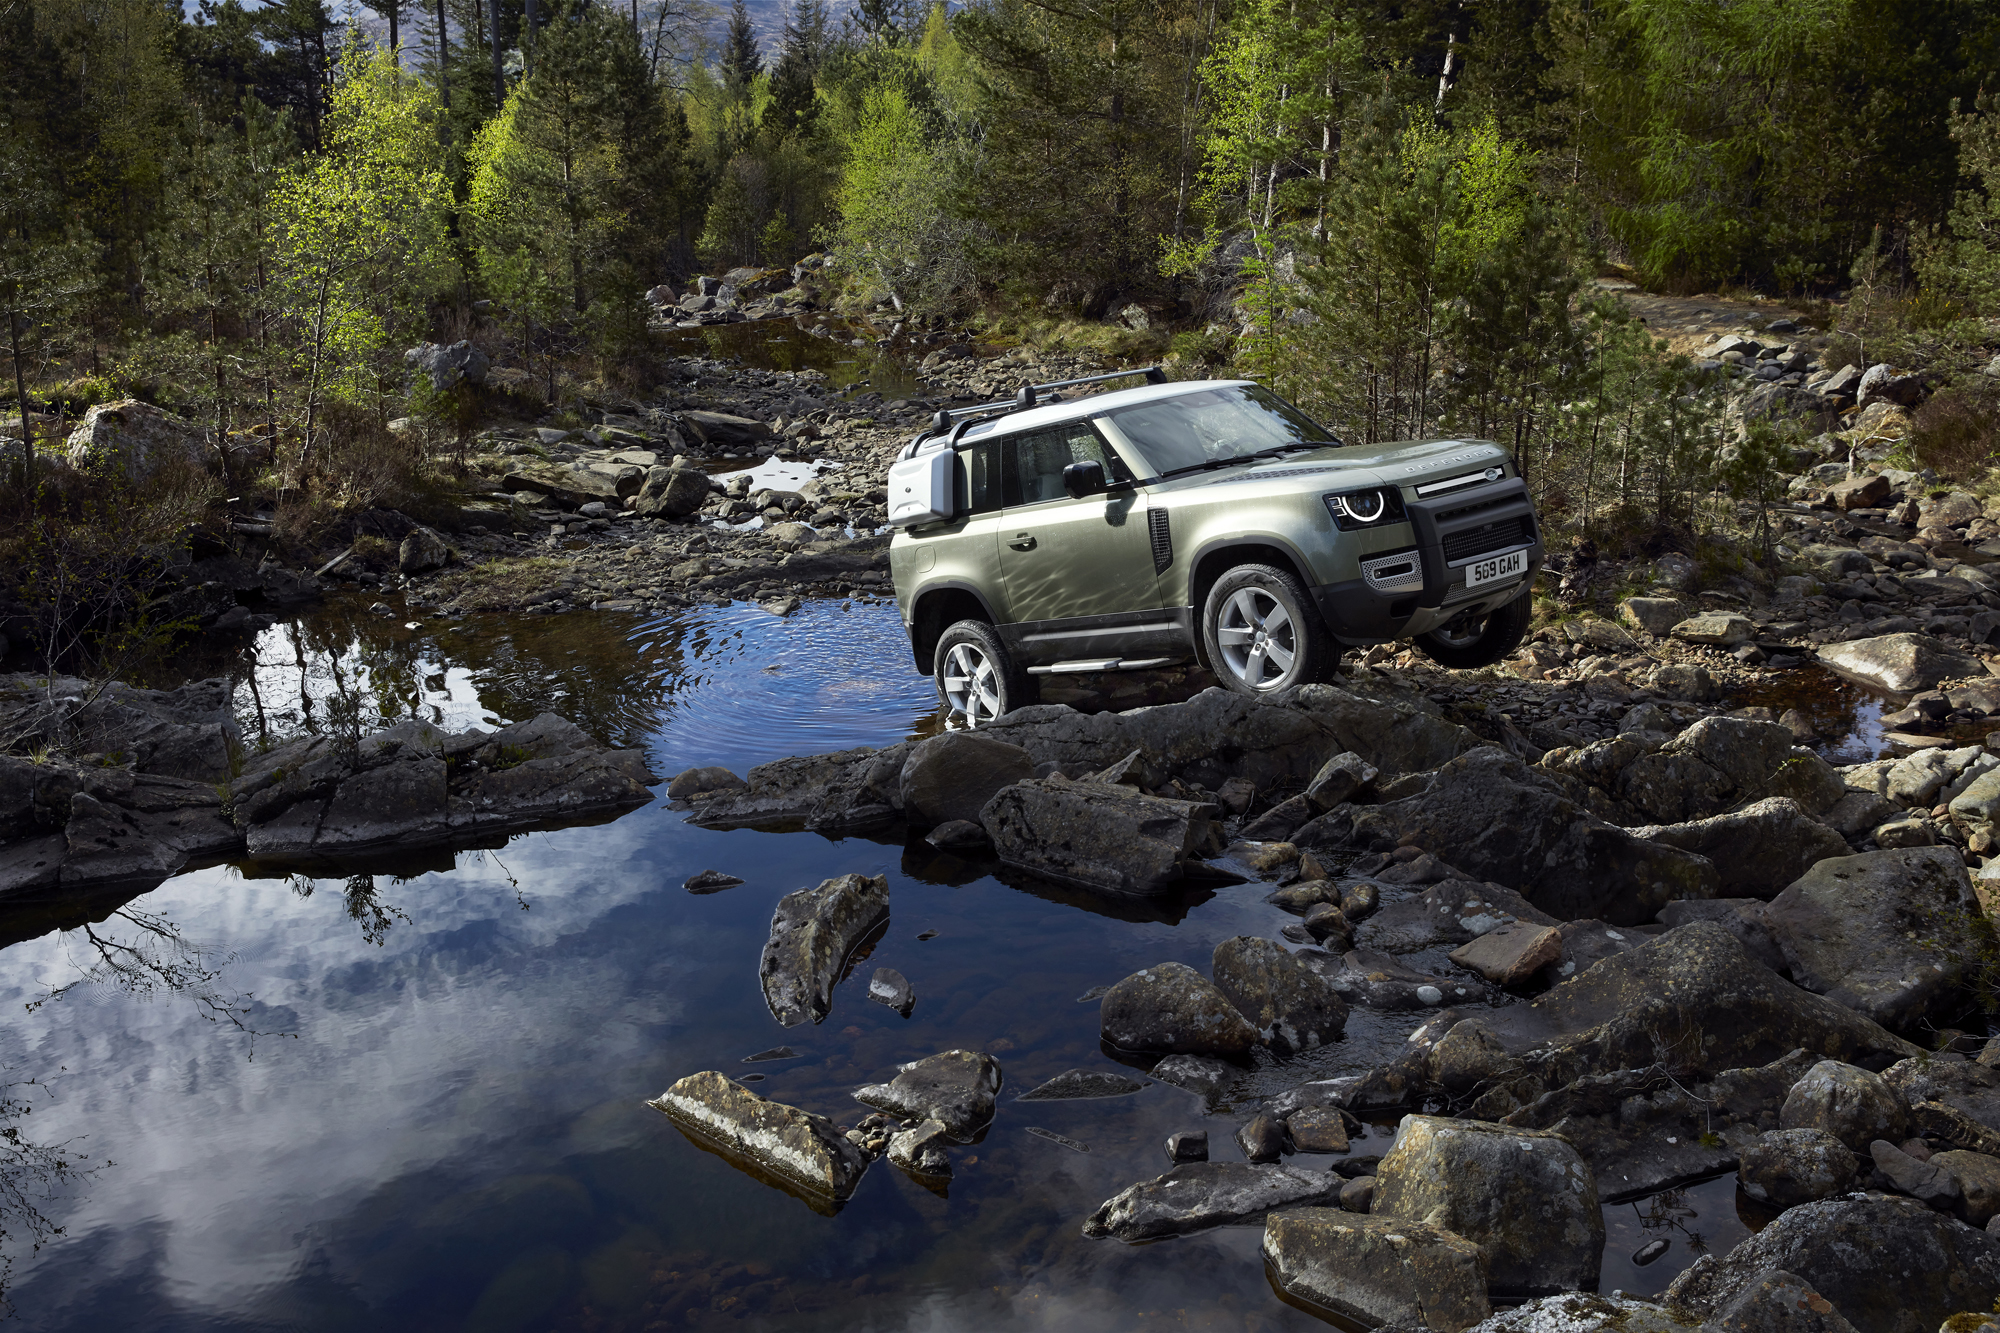 The 4x4 has a wading depth of up to 90cm